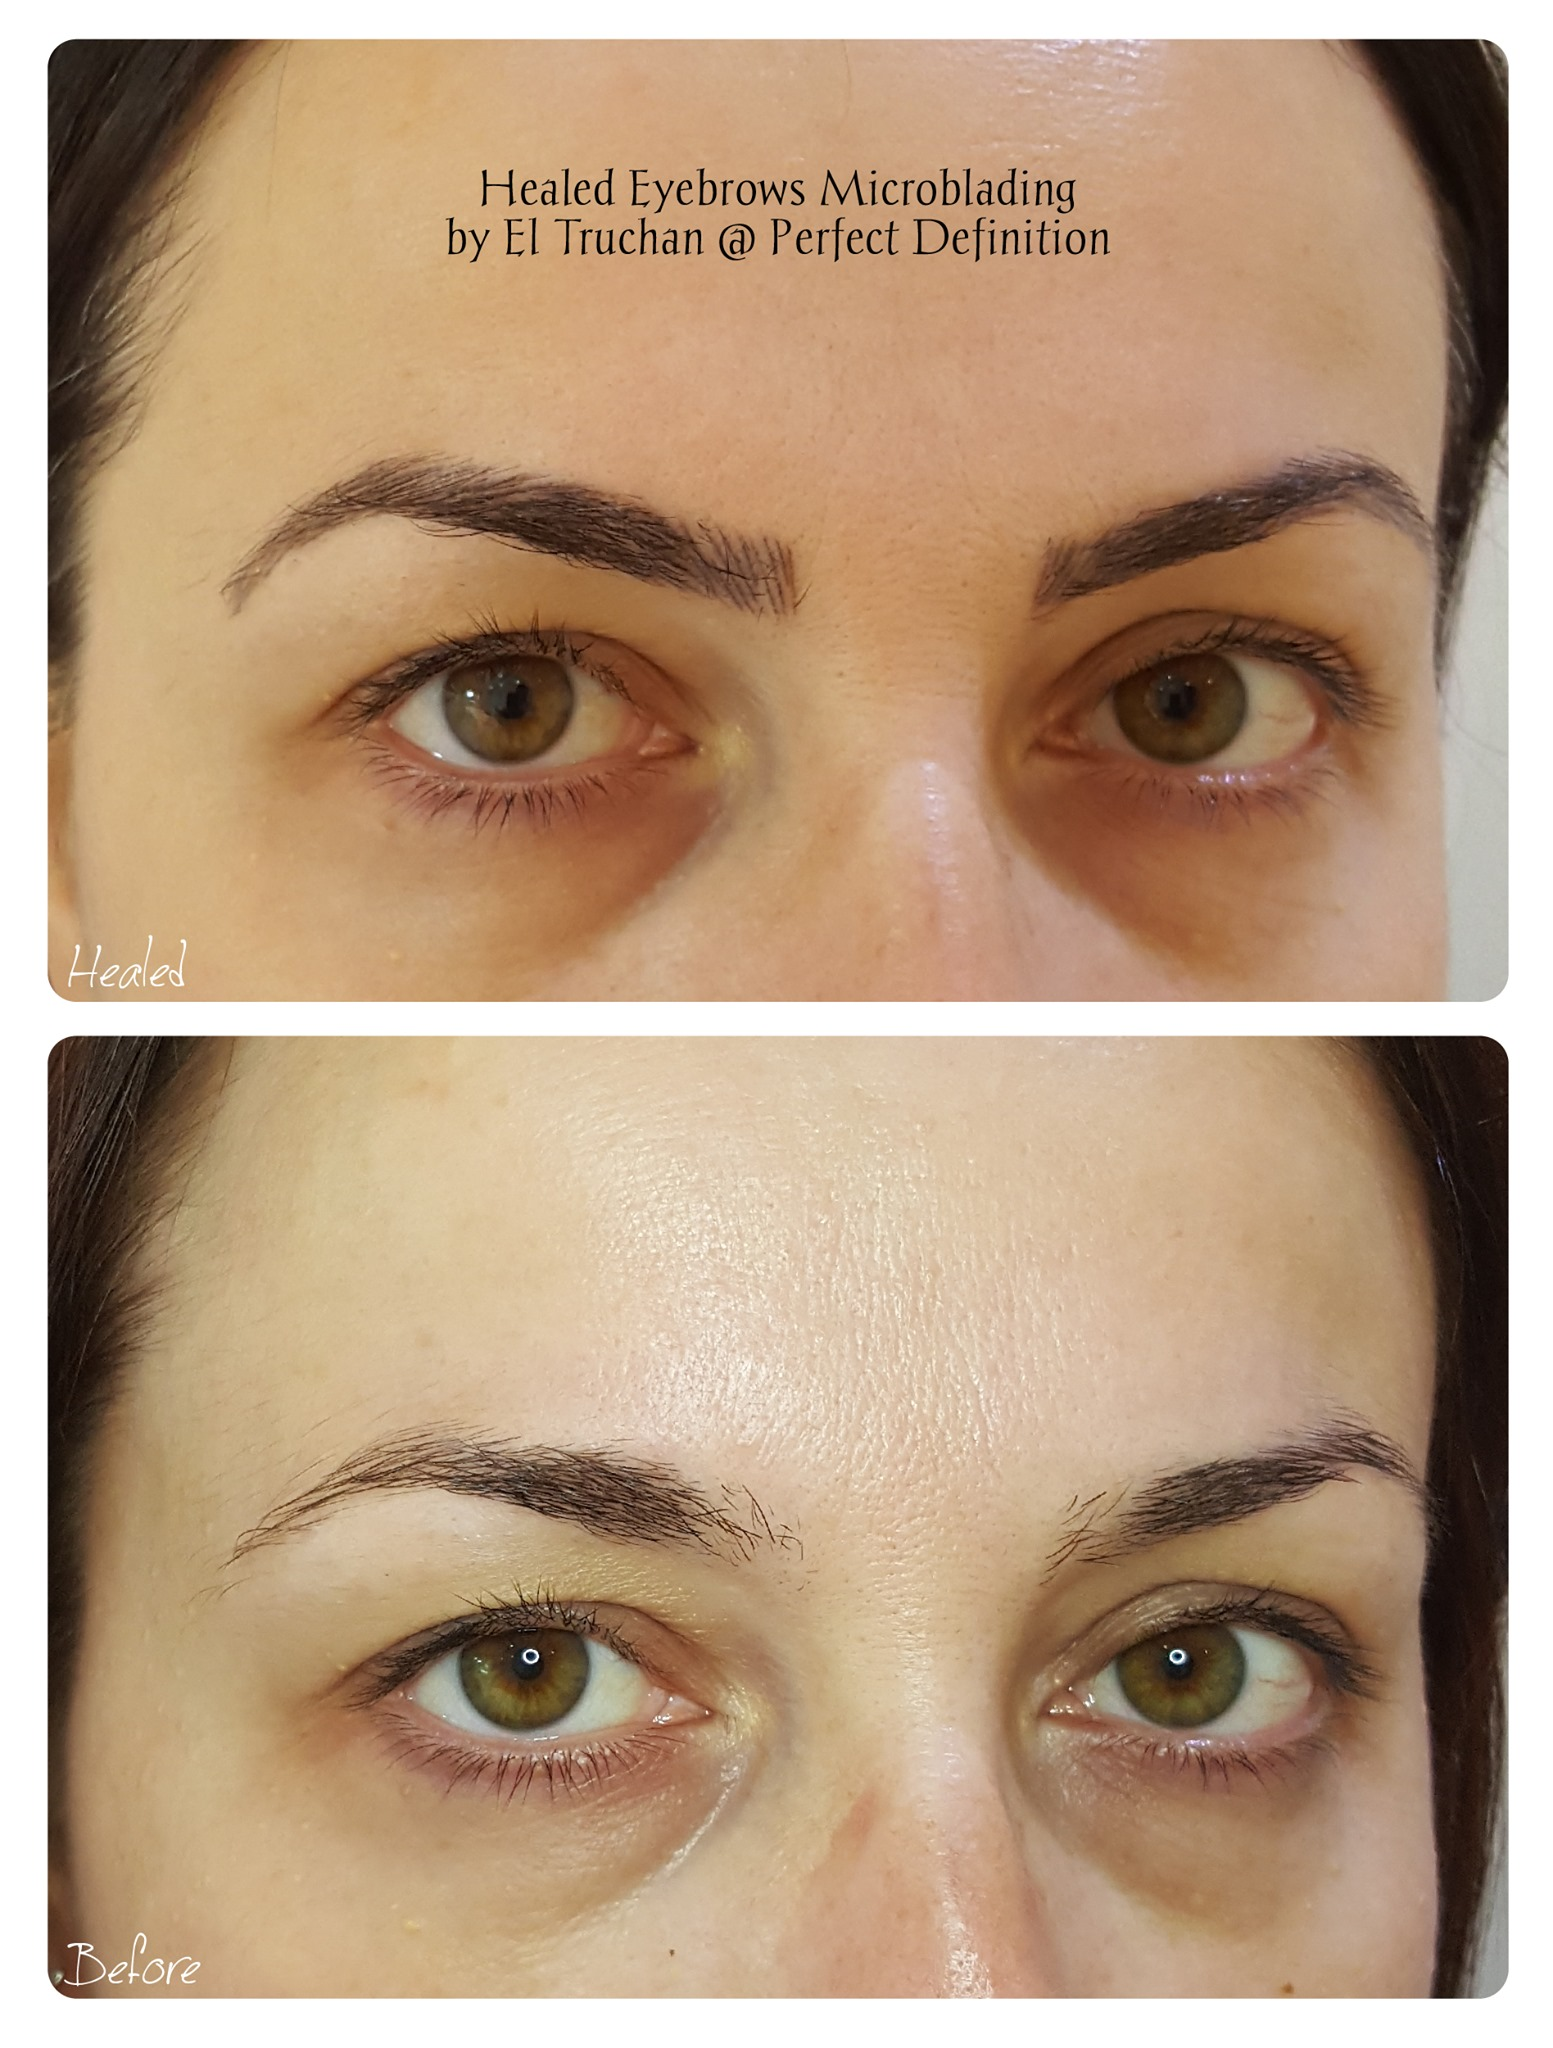 Healed Eyebrows Microblading by El Truch